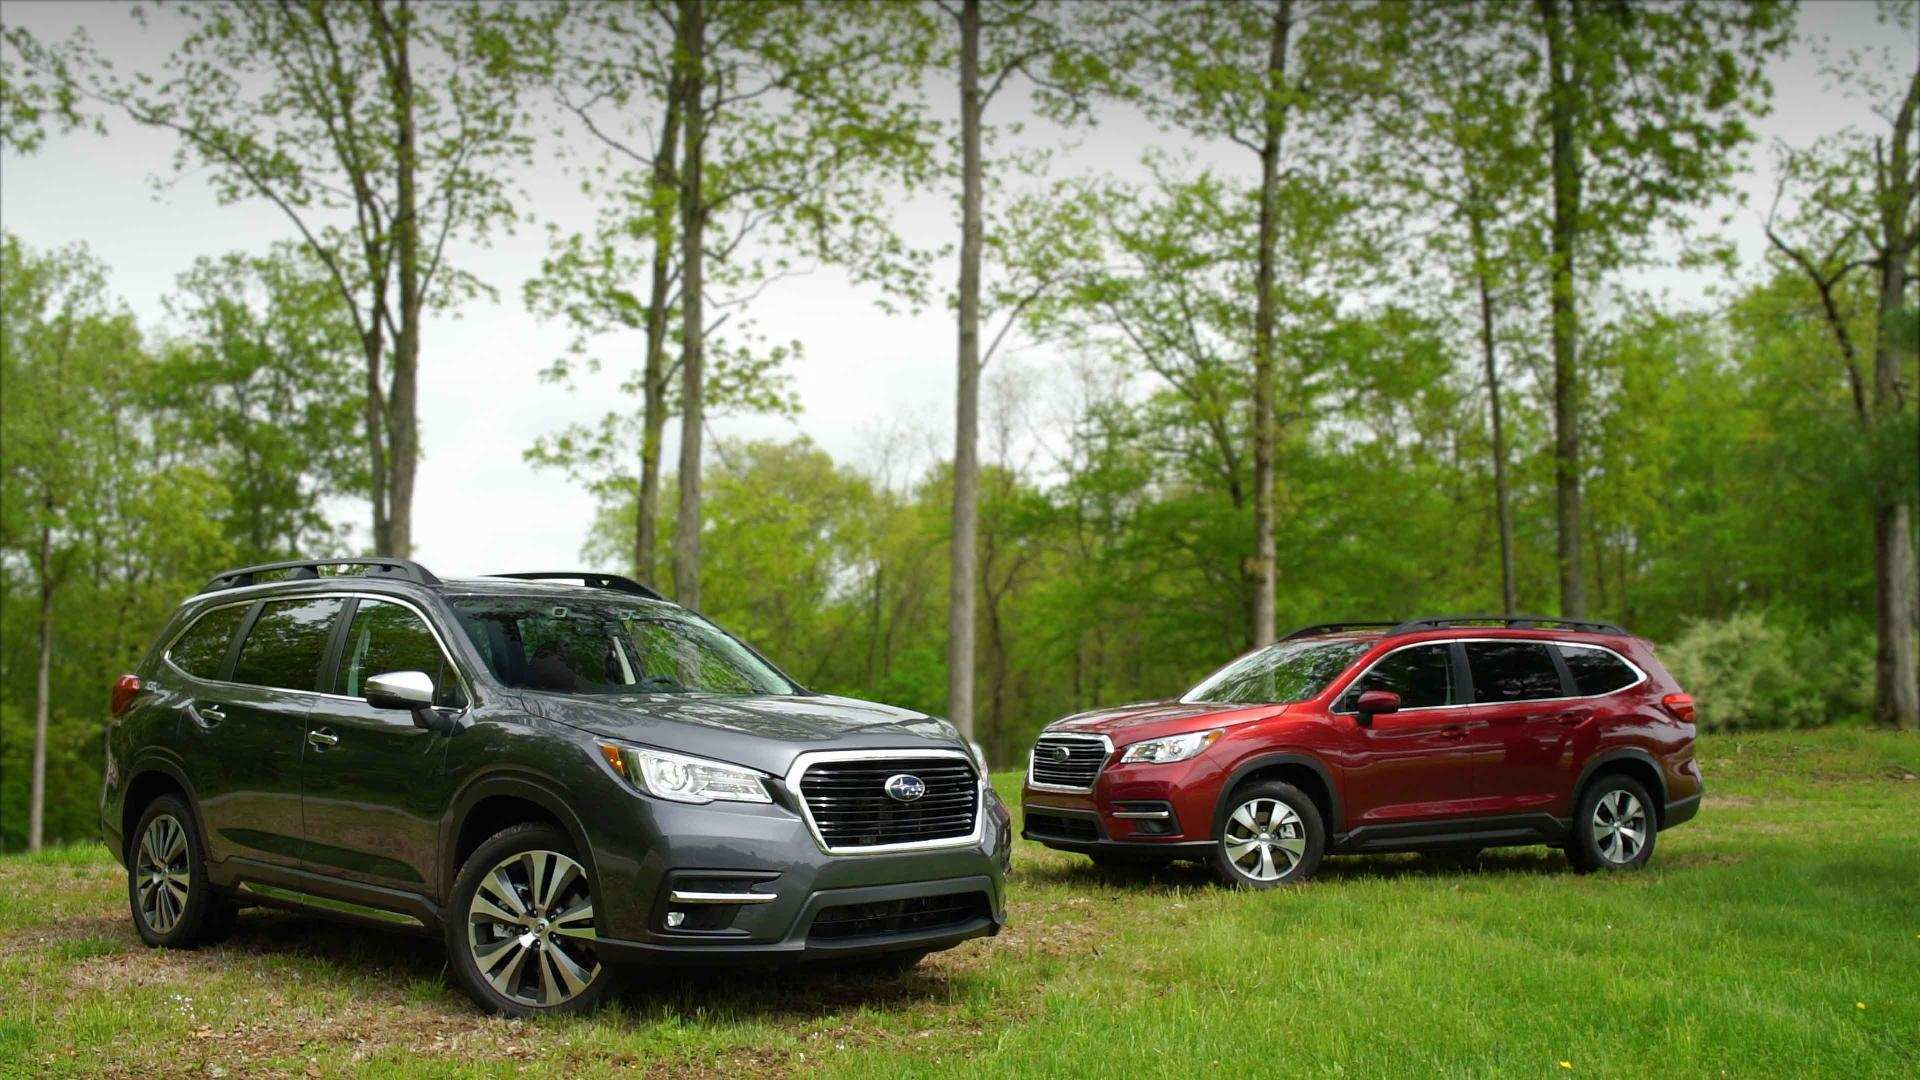 67 Gallery of 2019 Subaru Ascent Vs Honda Pilot Vs Toyota Highlander Prices for 2019 Subaru Ascent Vs Honda Pilot Vs Toyota Highlander